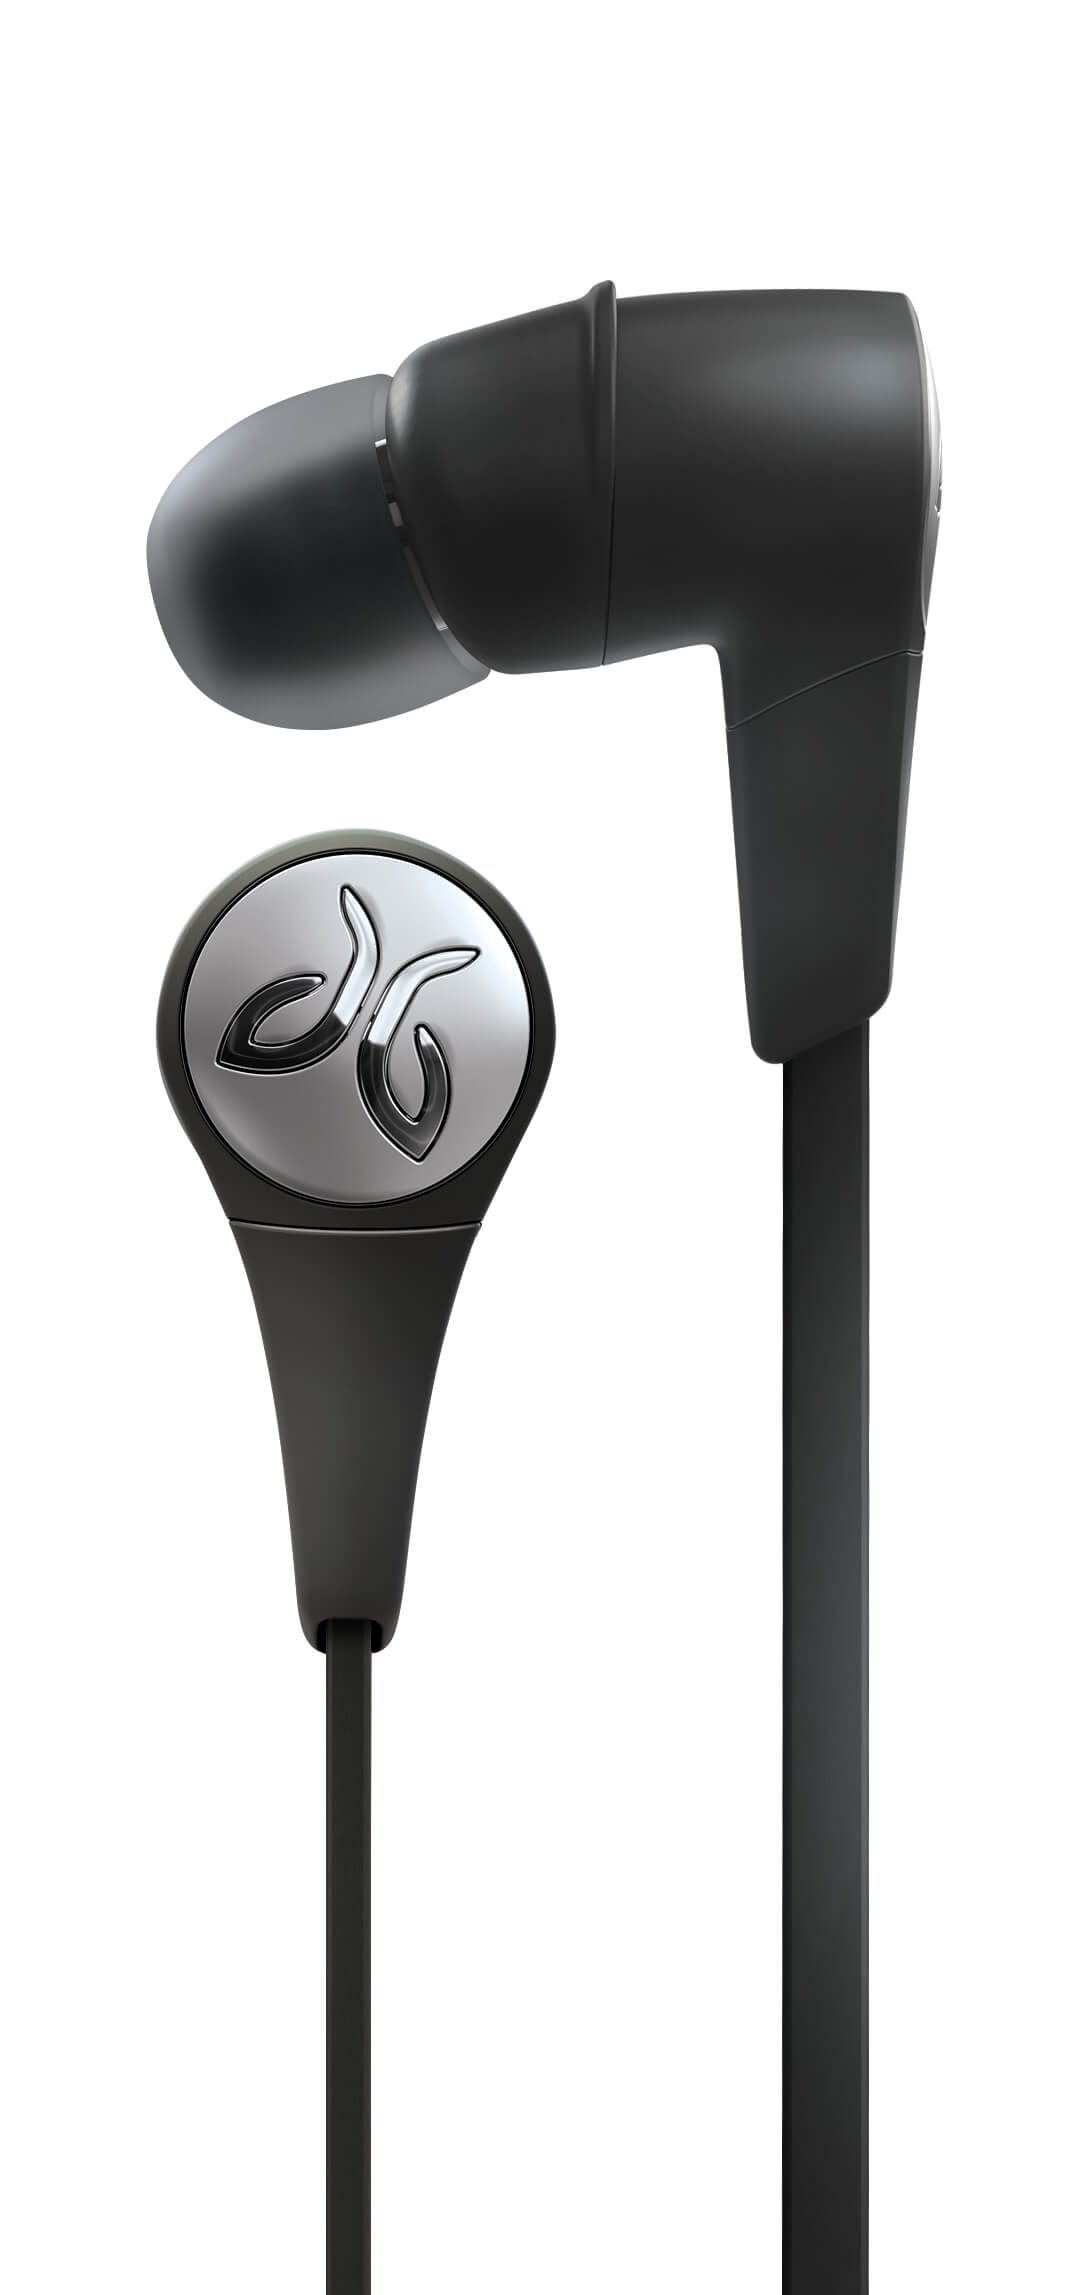 Blackout Jaybird X3 Sport Headphones Earbuds Close-Up